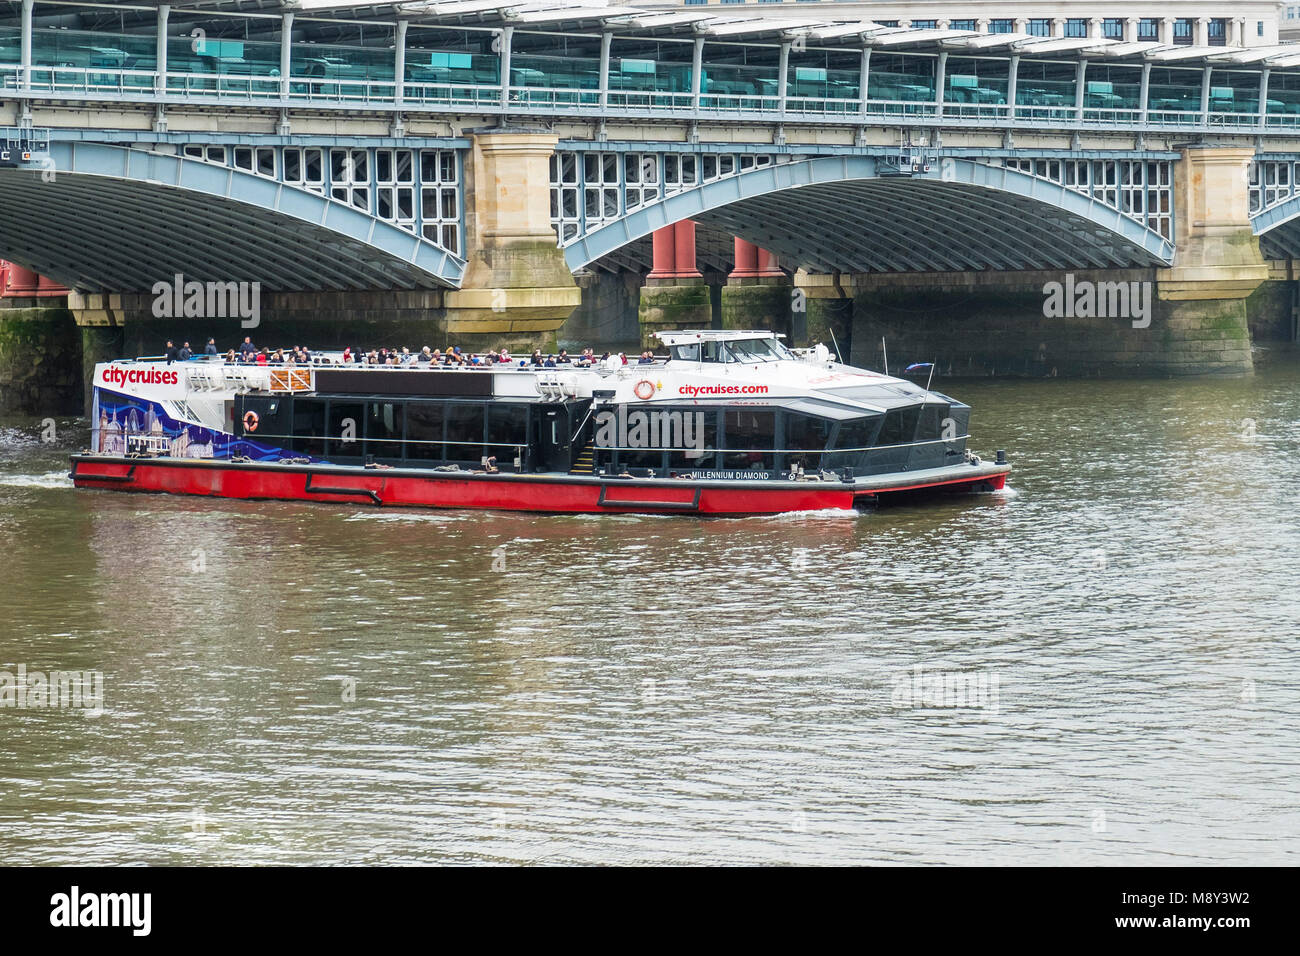 The Millenium Diamond, flagship of City Cruises passes under Blackfriars Bridge on the River Thames in London. - Stock Image